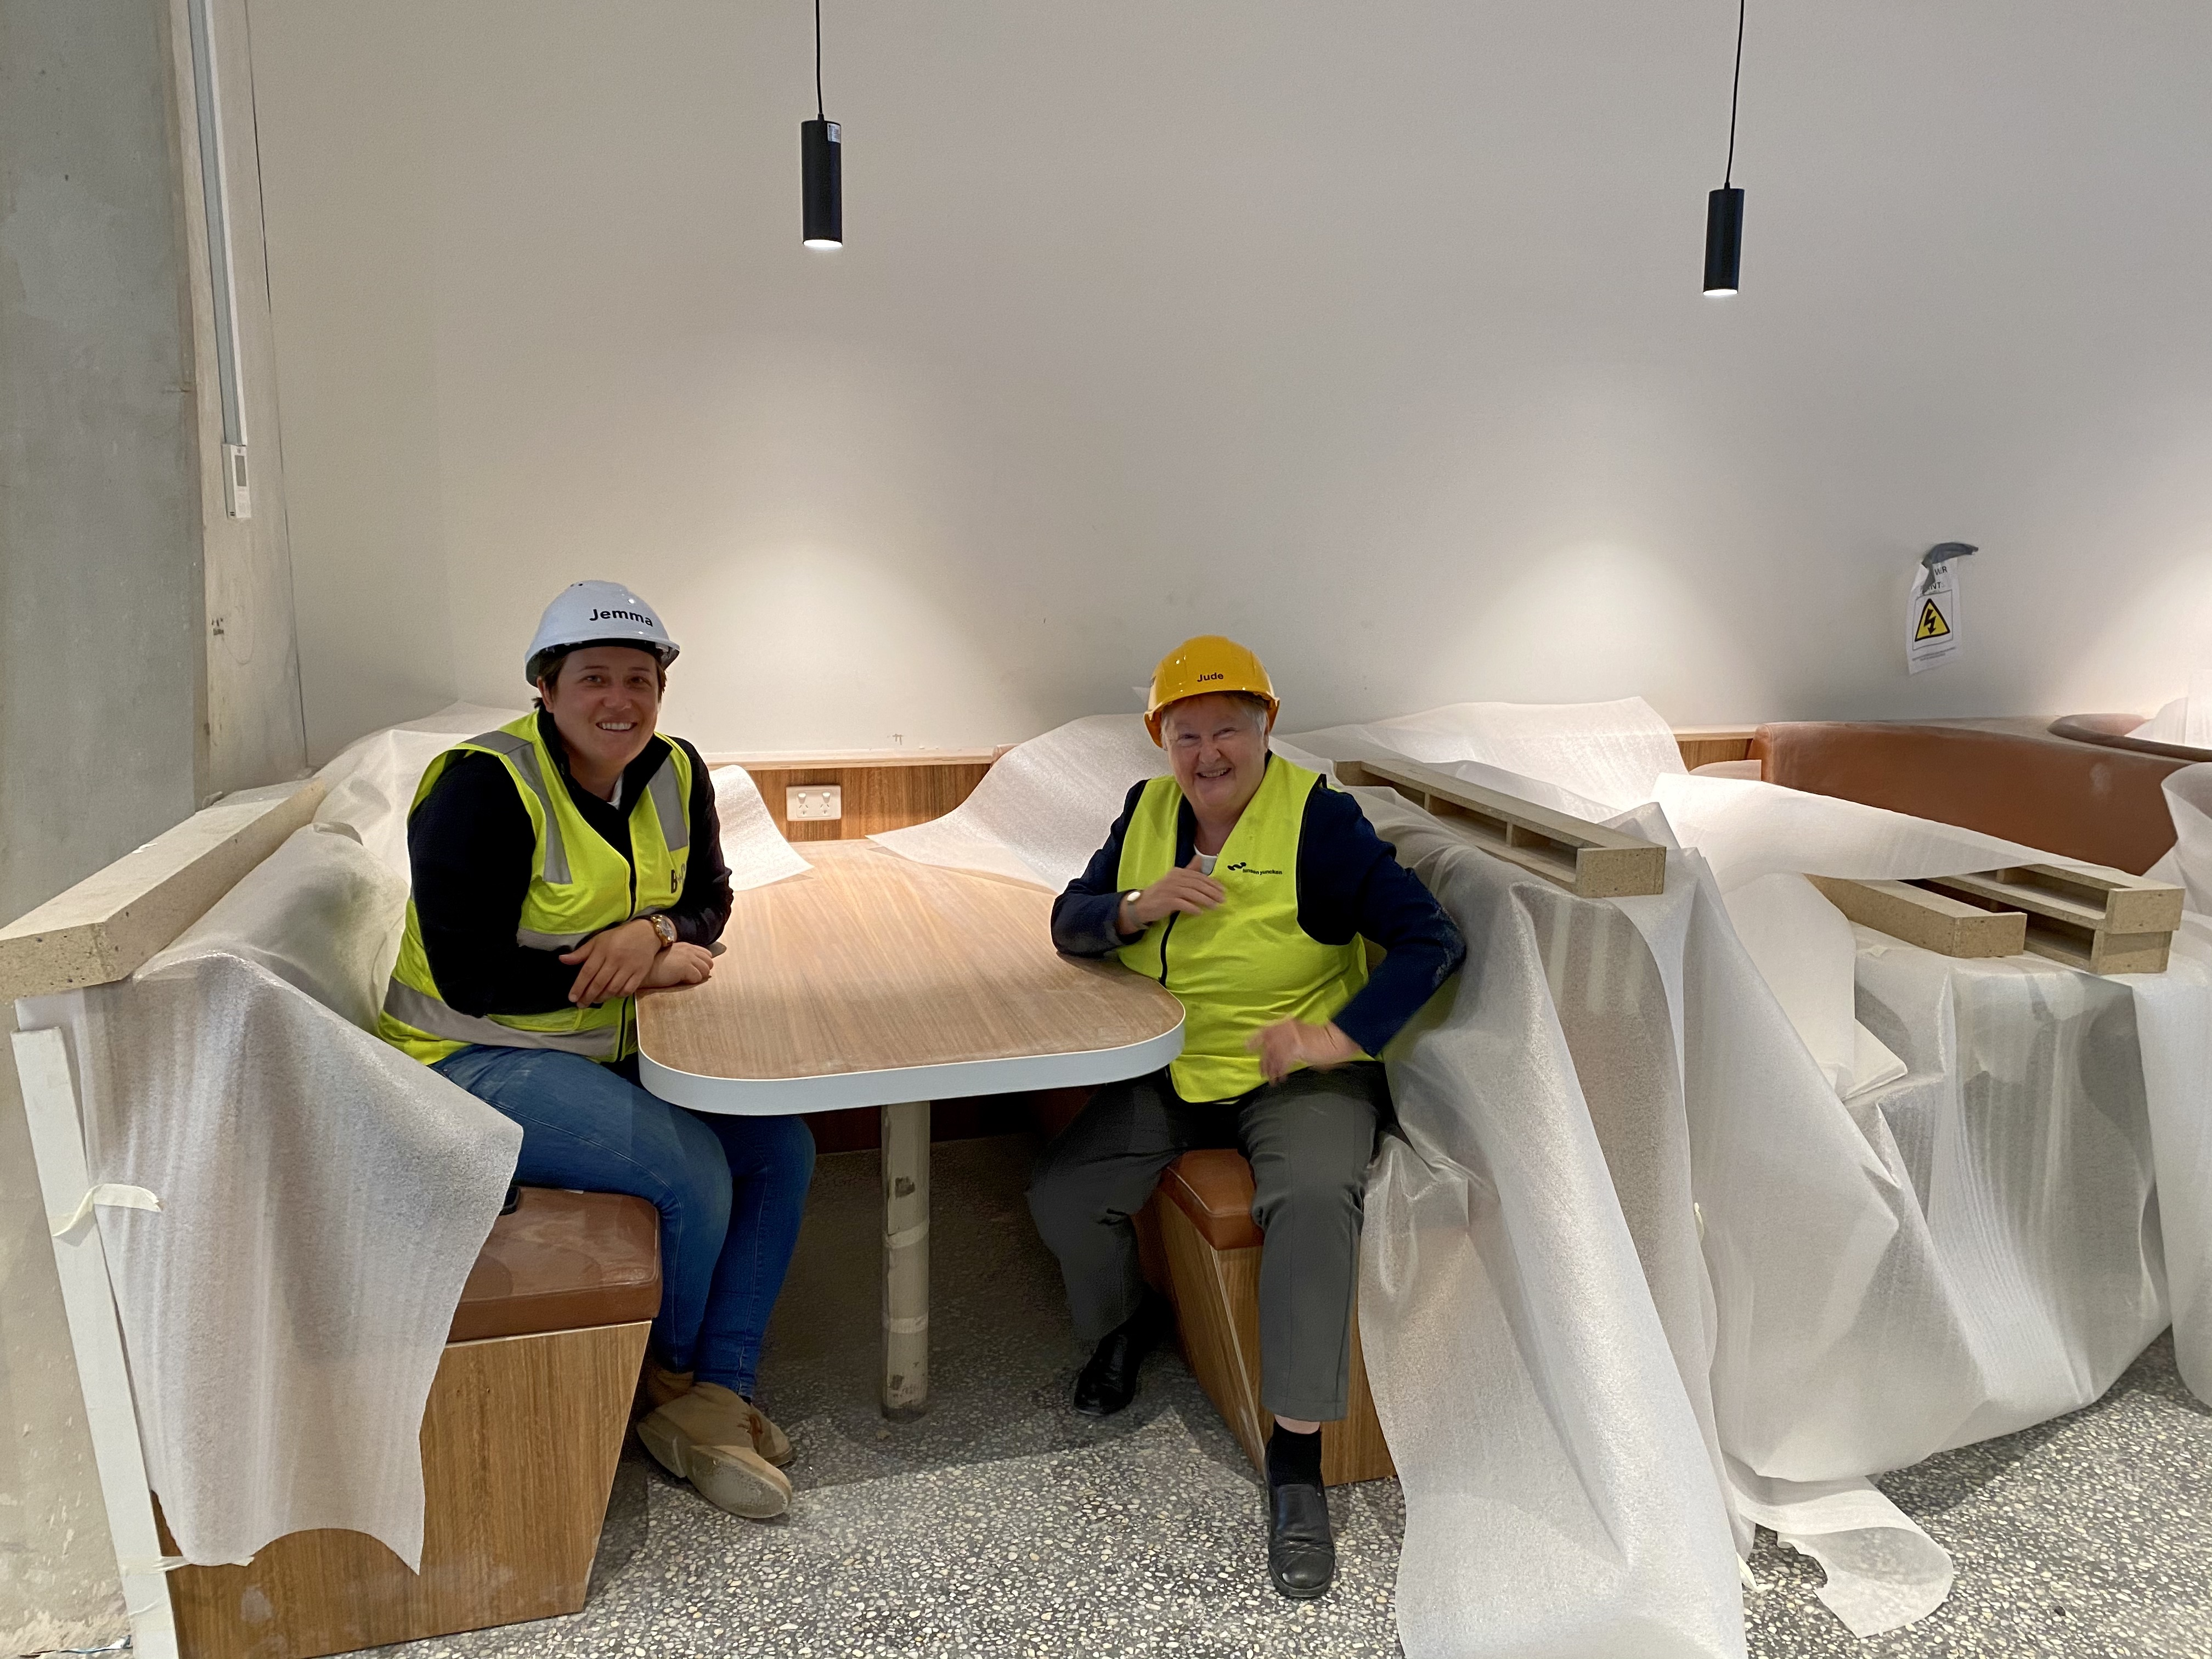 Photo of Jude Munro and Jemma Bates on the building site, sitting at a booth.